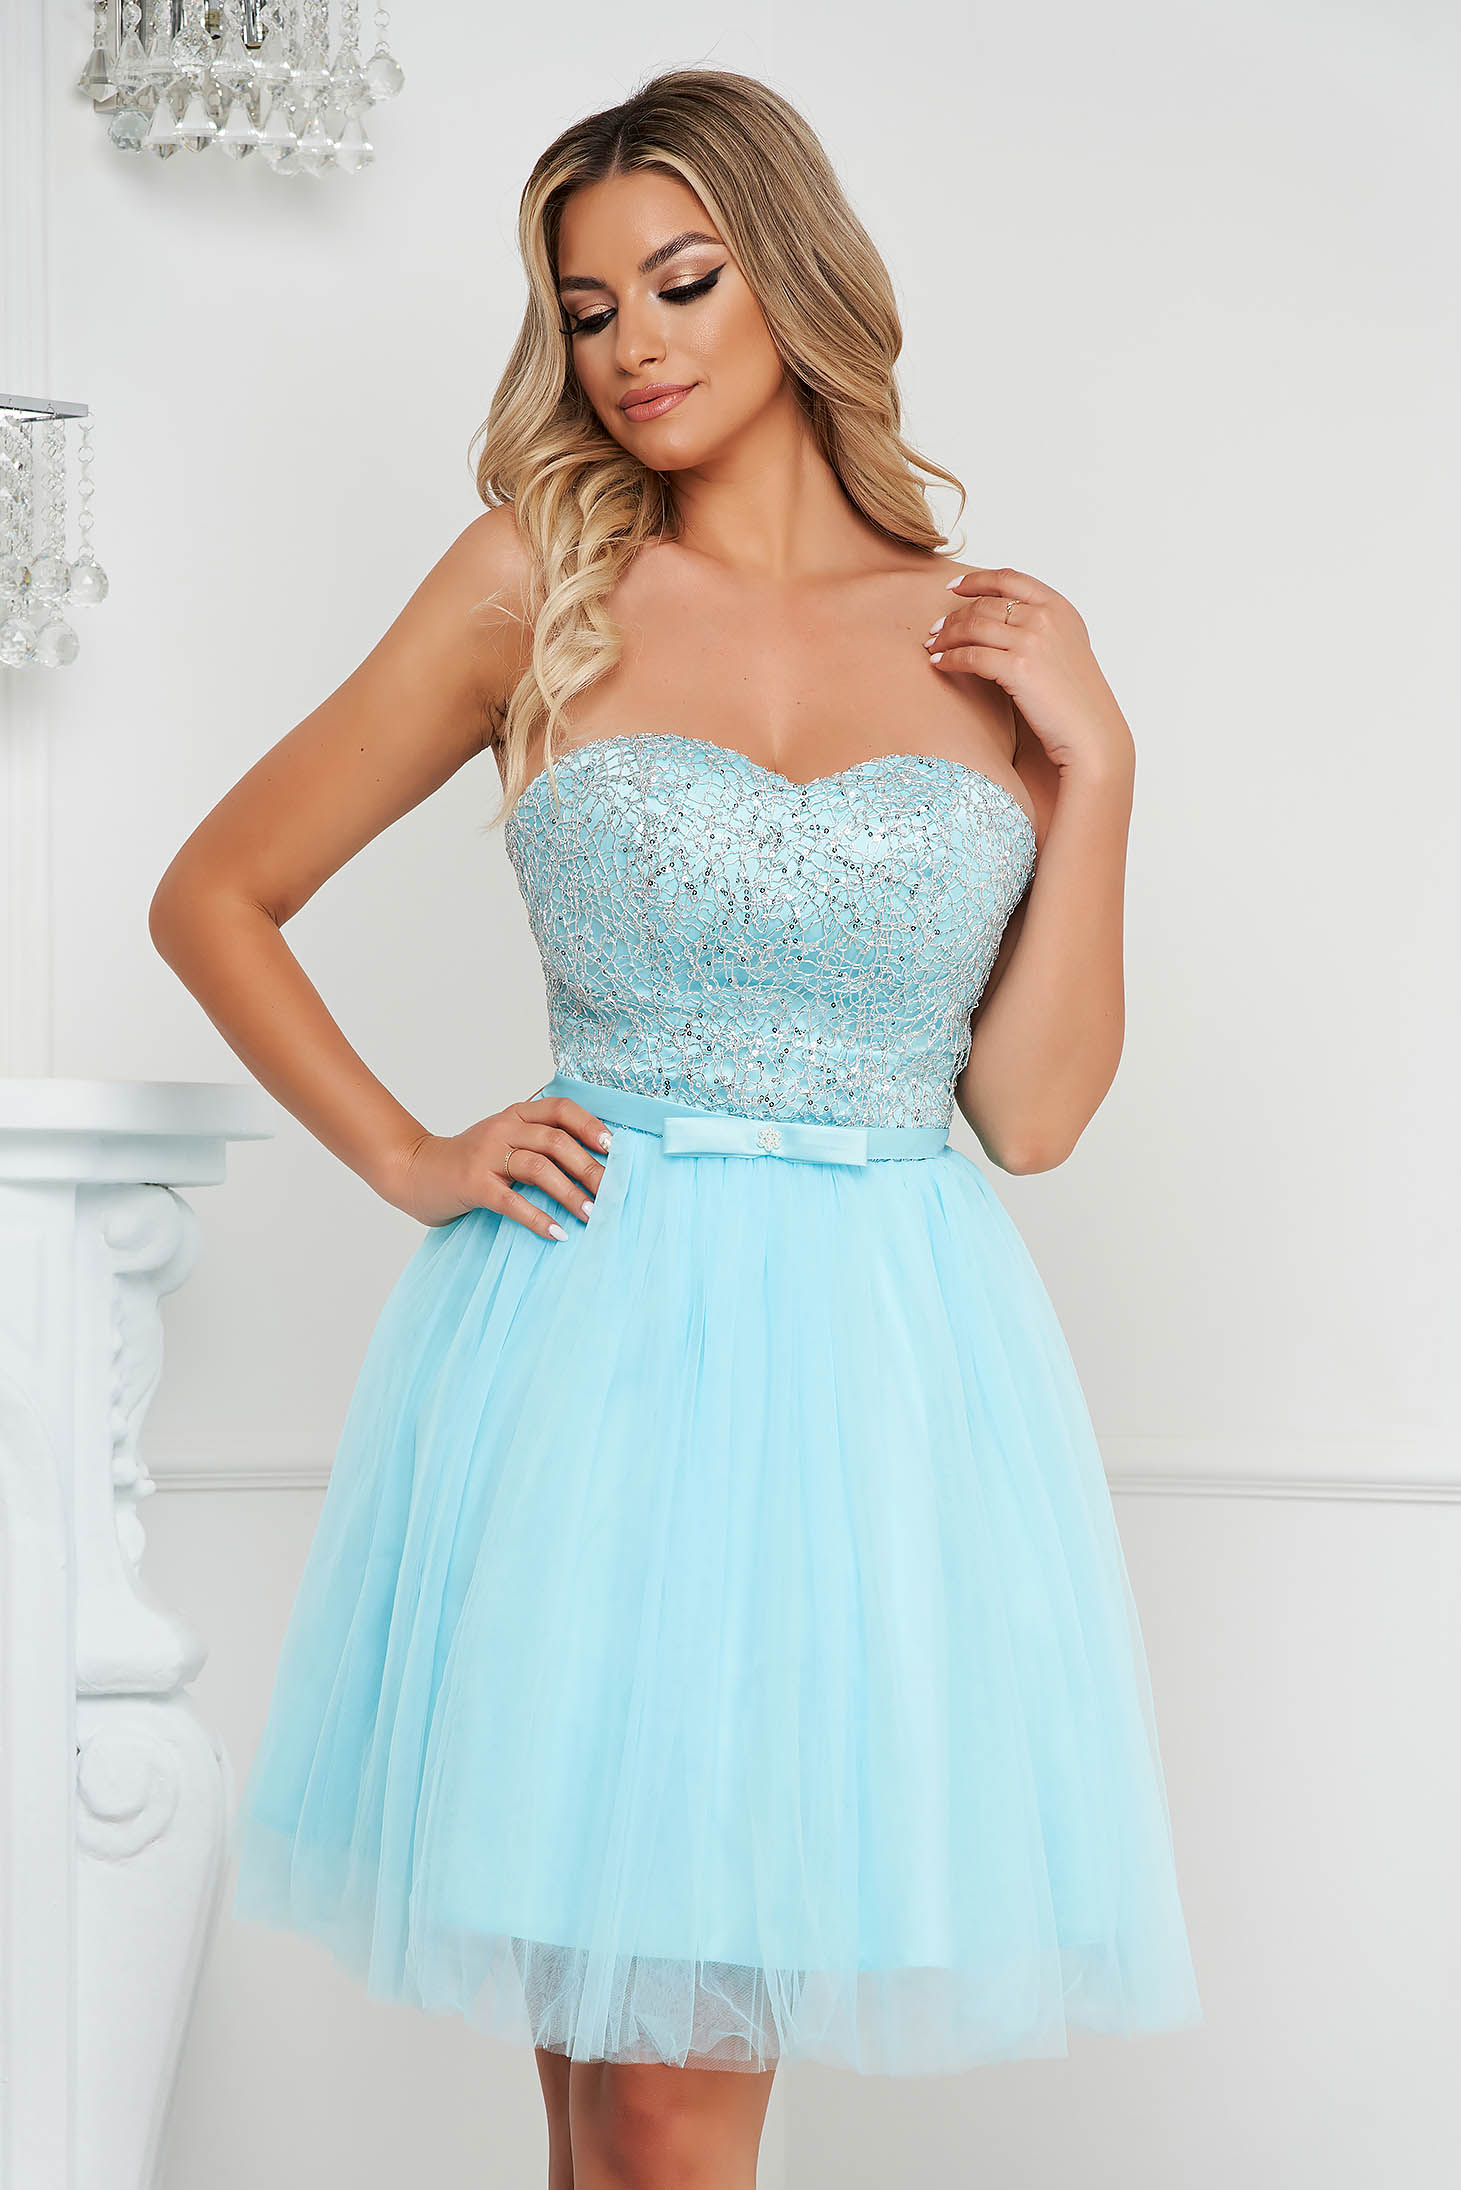 Aqua dress short cut occasional cloche from tulle strapless with sequin embellished details